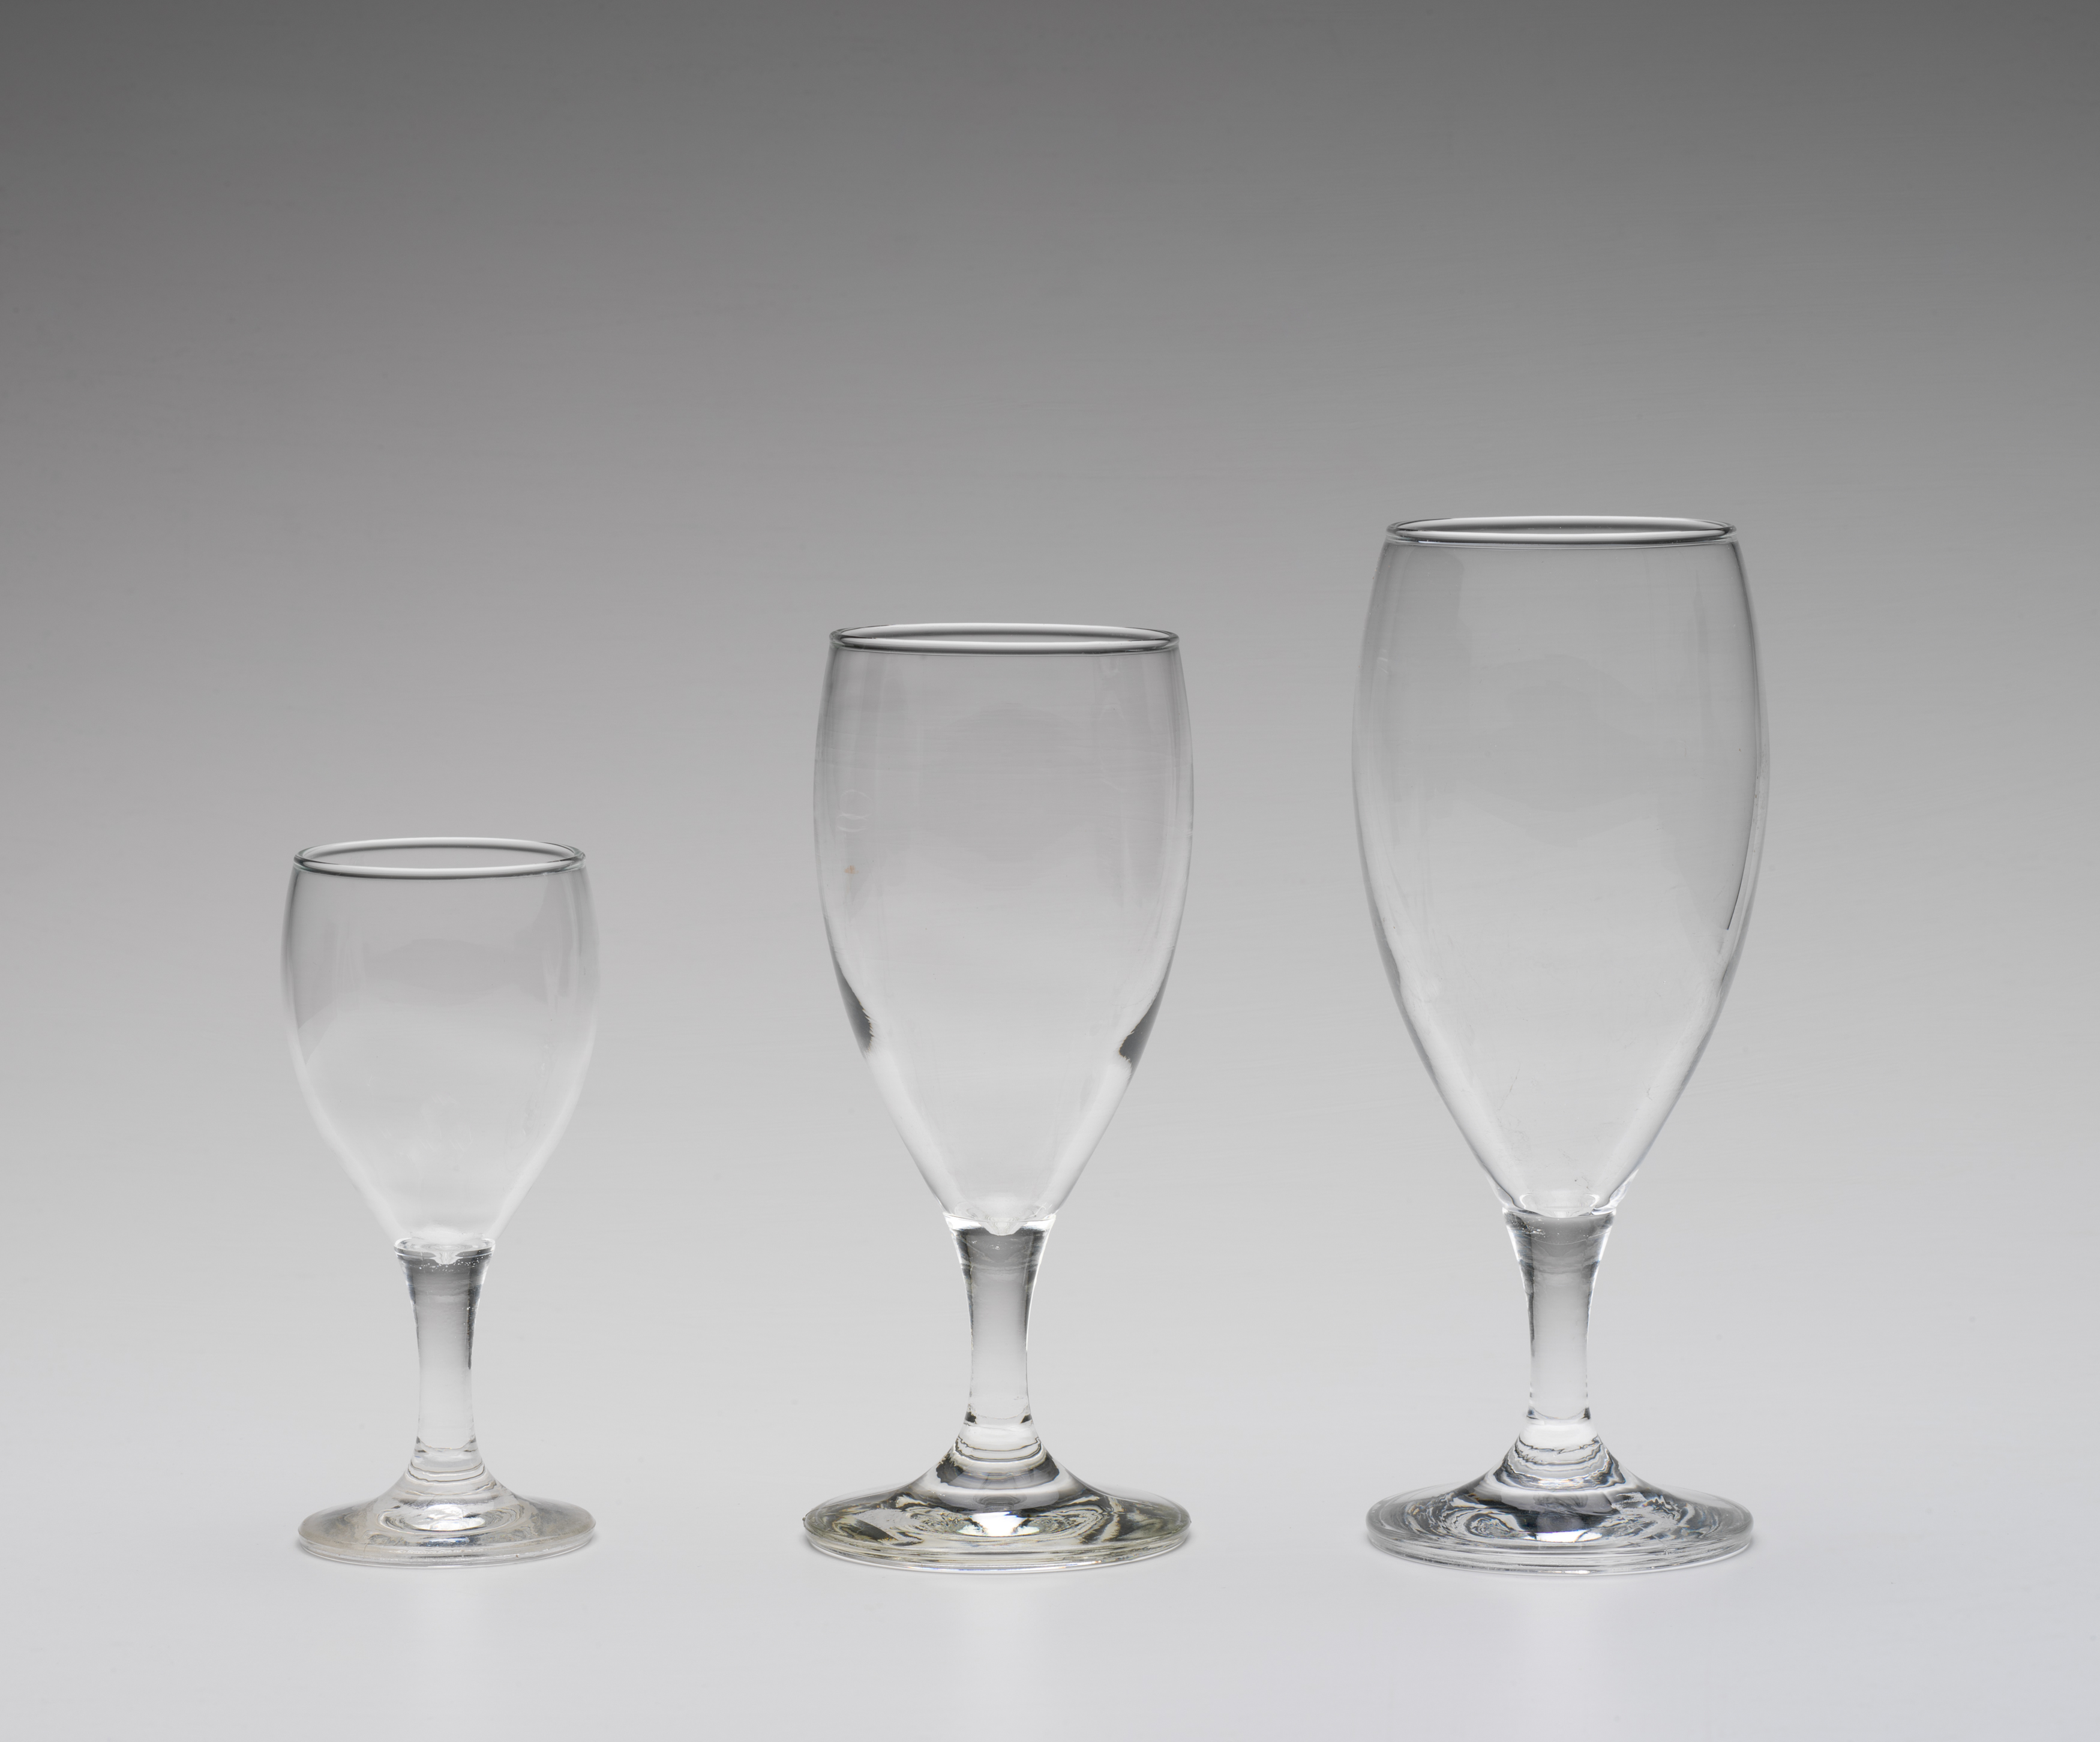 Three wine glasses of different sizes on a grey background.